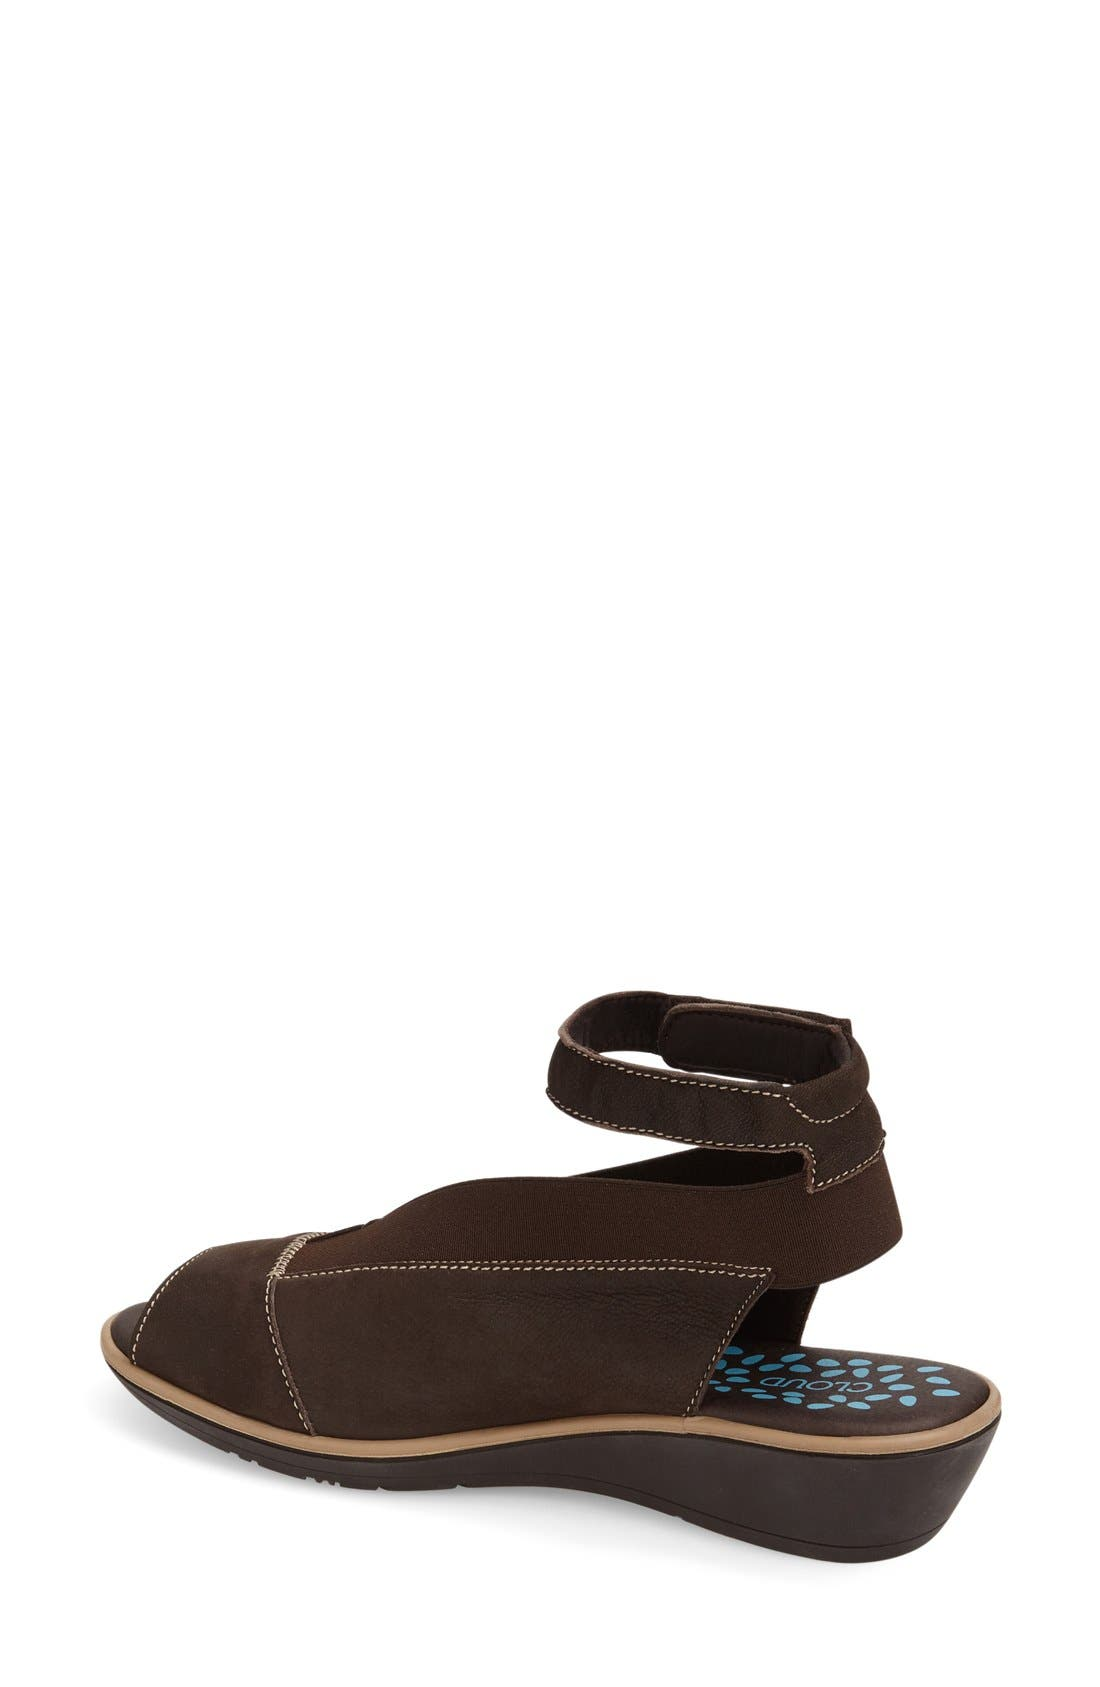 Saucy Ankle Strap Wedge,                             Alternate thumbnail 2, color,                             201